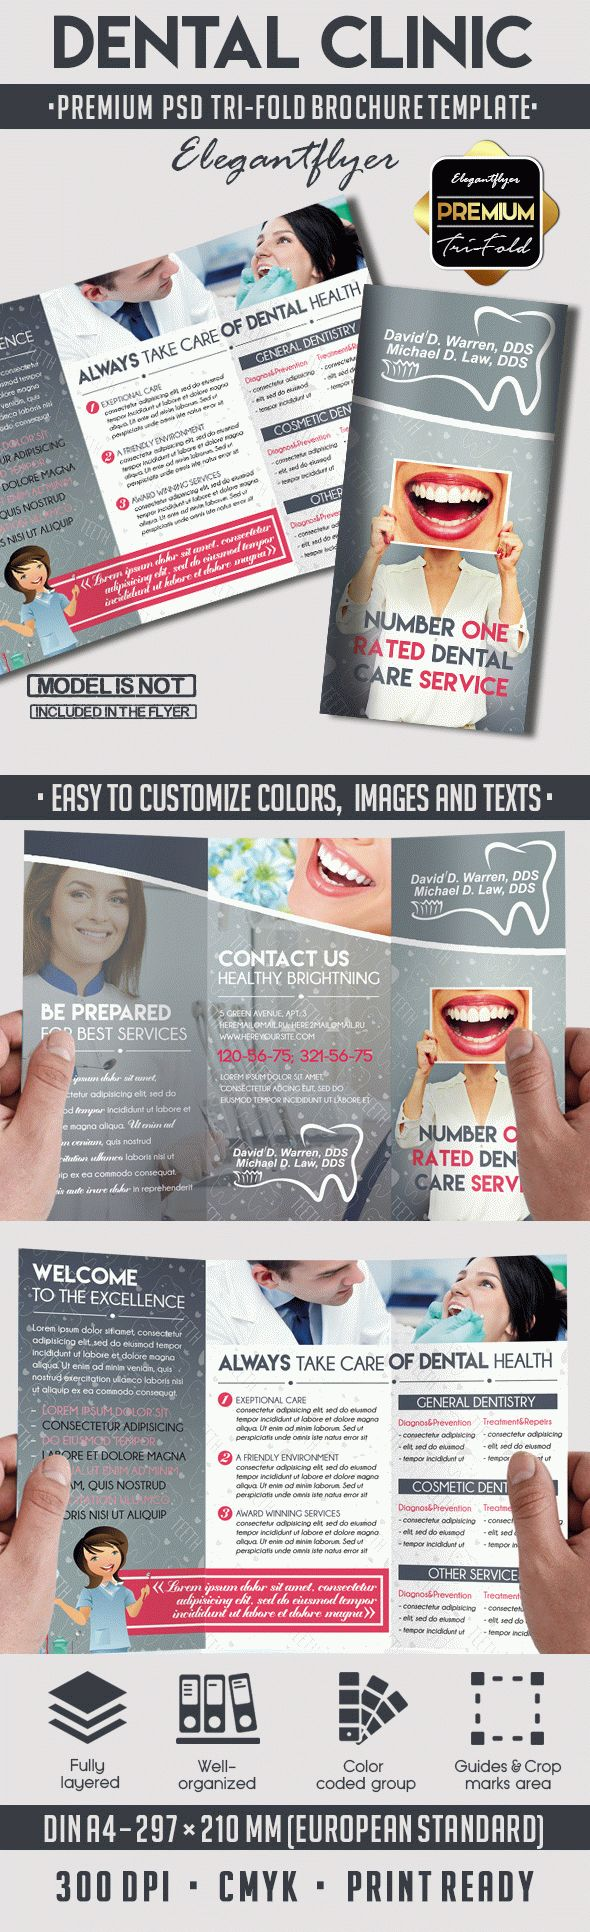 Tri-Fold Brochure for Dental Clinic